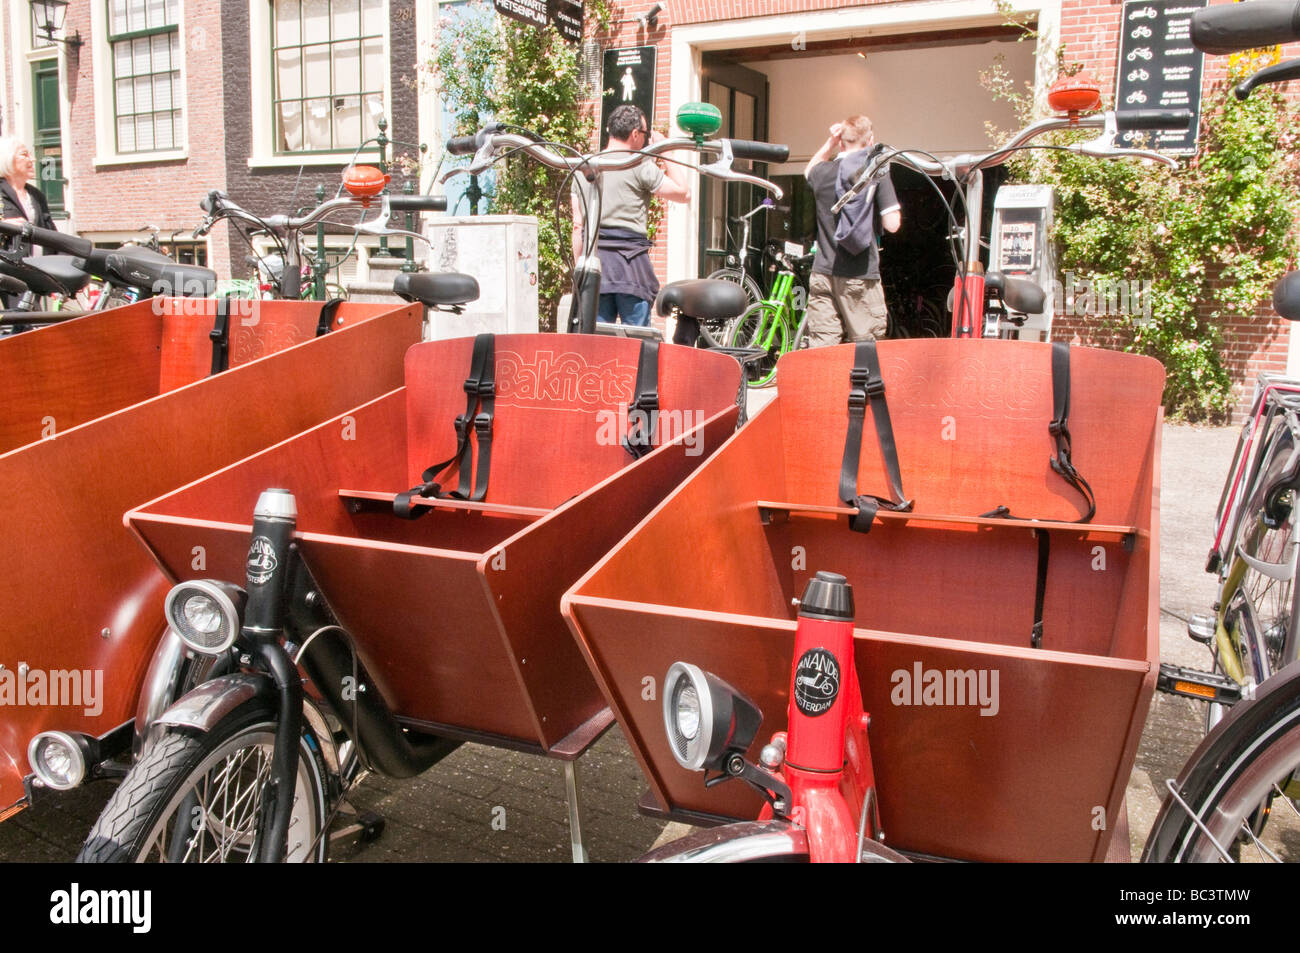 Bicycles With Wooden Box Child Seat In Front For Hire In Amsterdam